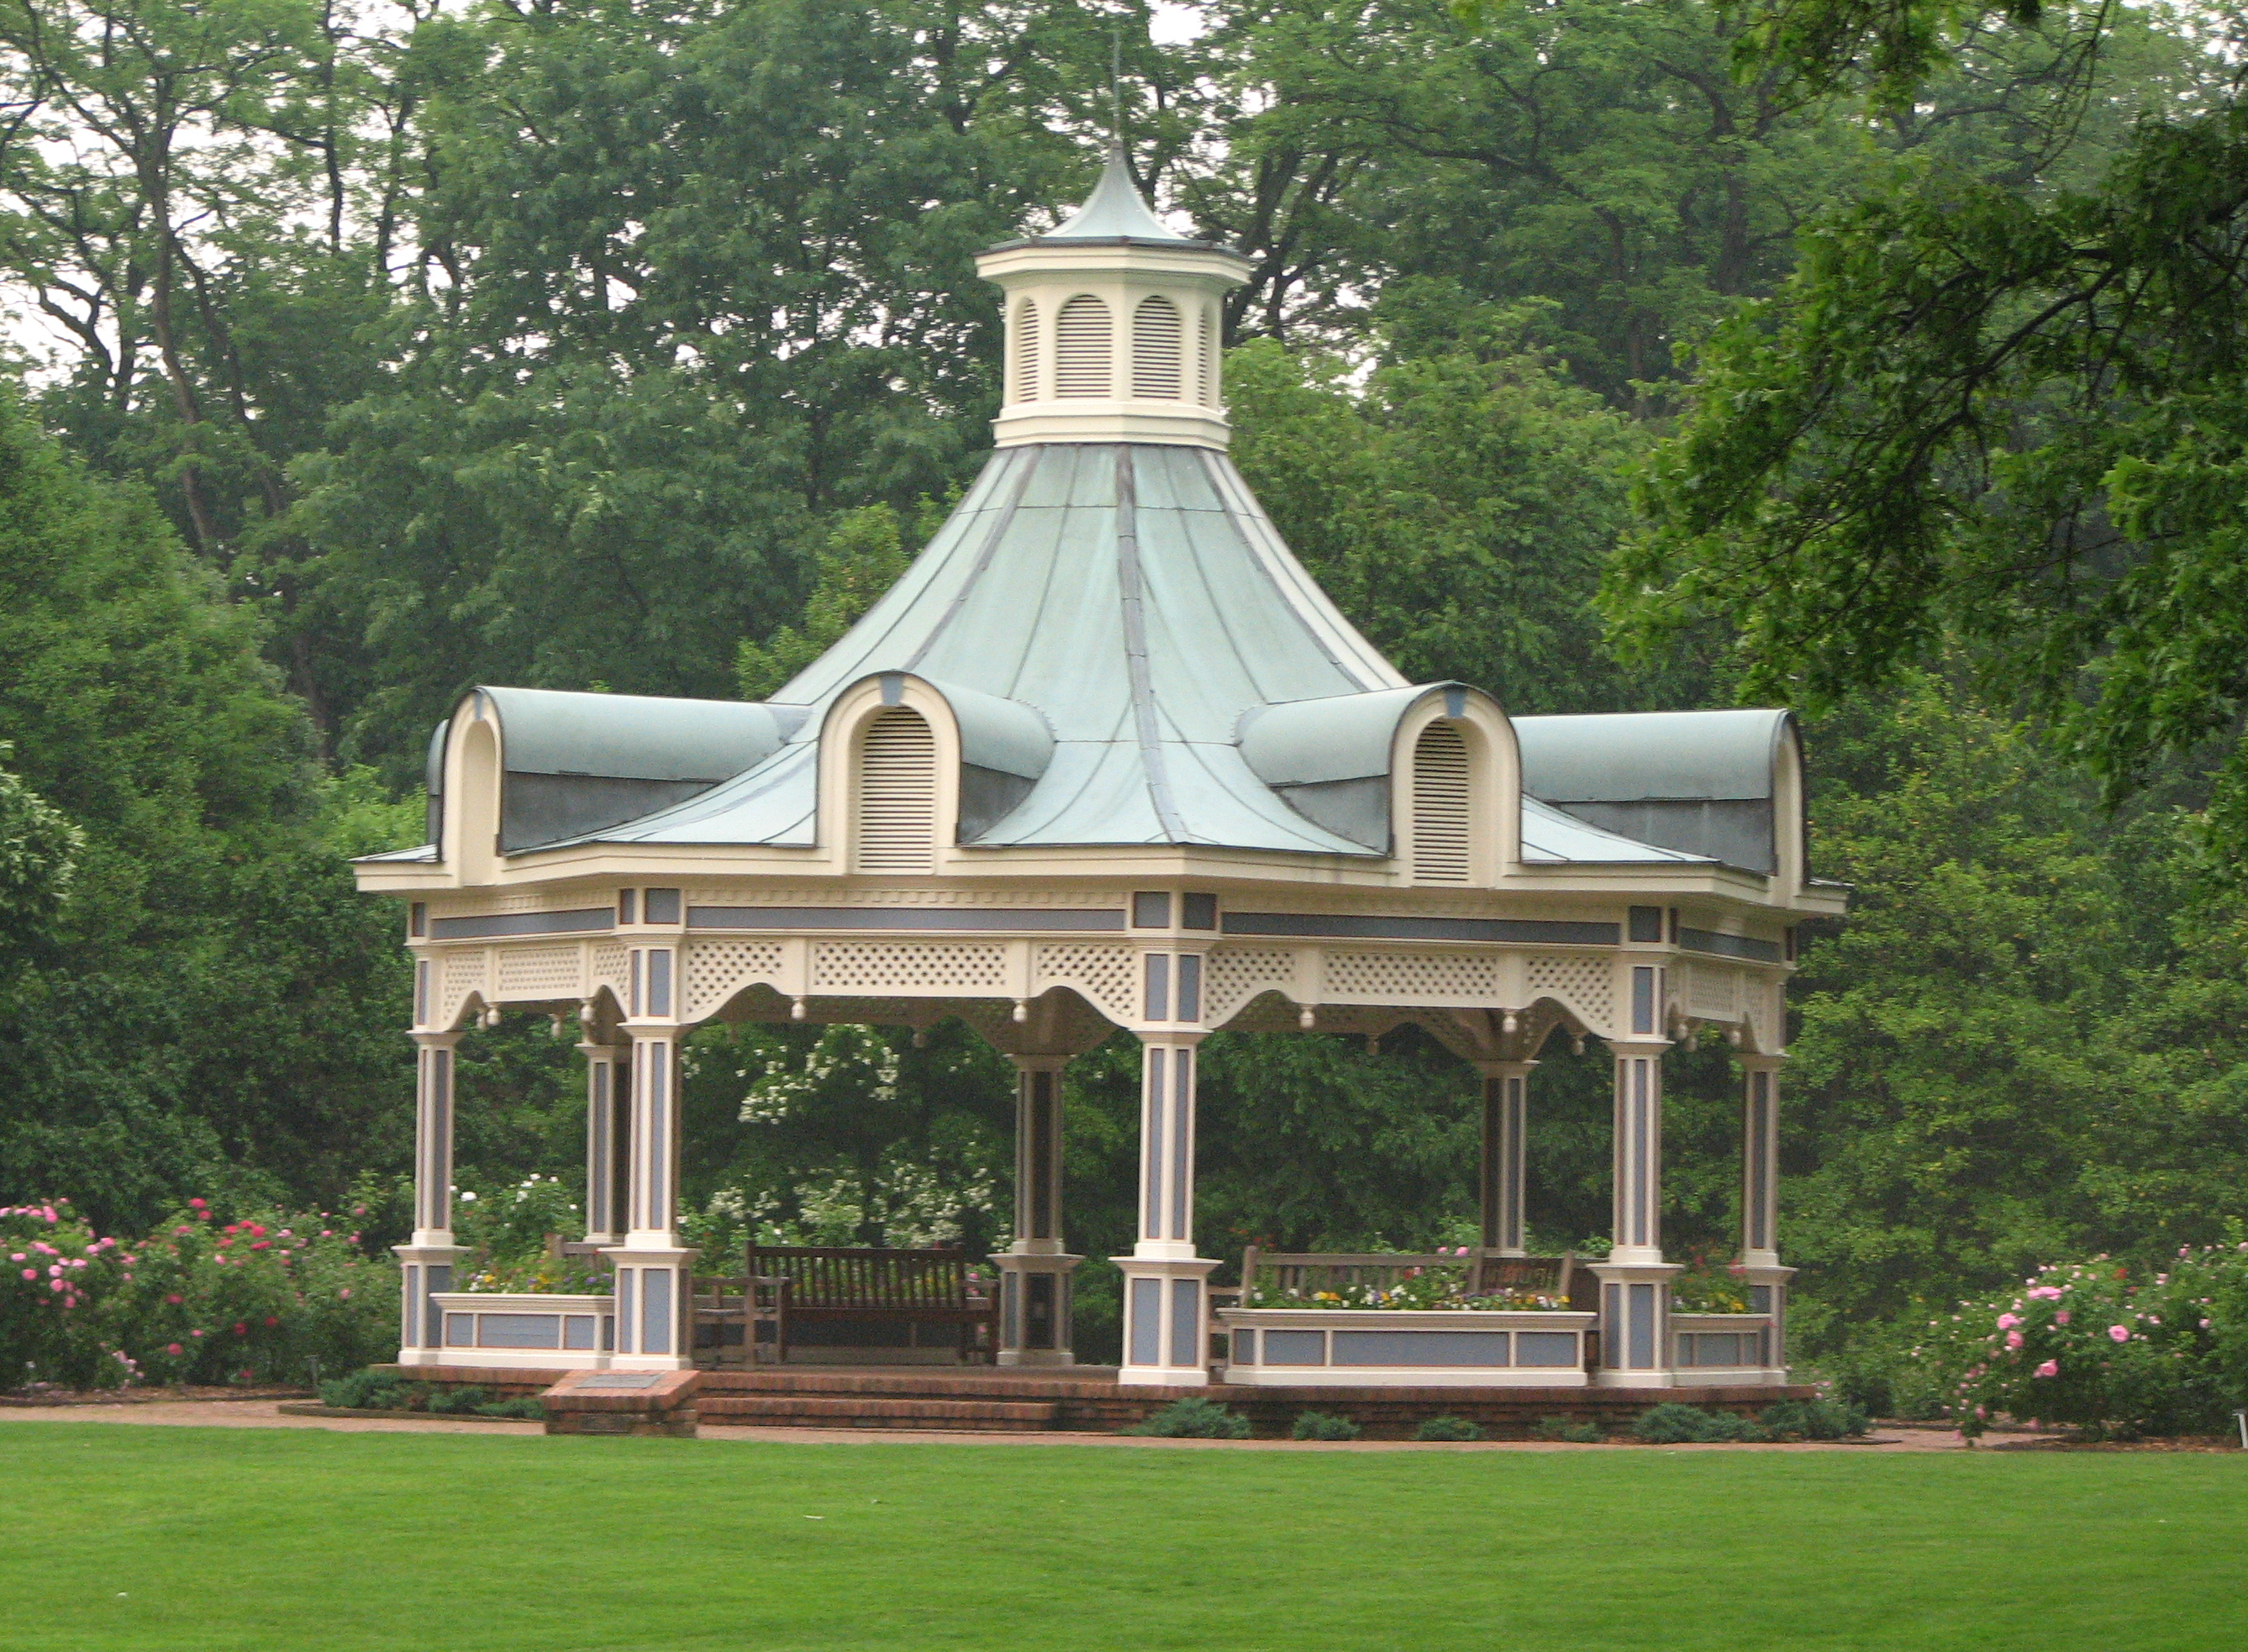 43 Wicked Gazebo Design Ideas within 13 Awesome Concepts of How to Build Gazebo Ideas For Backyard